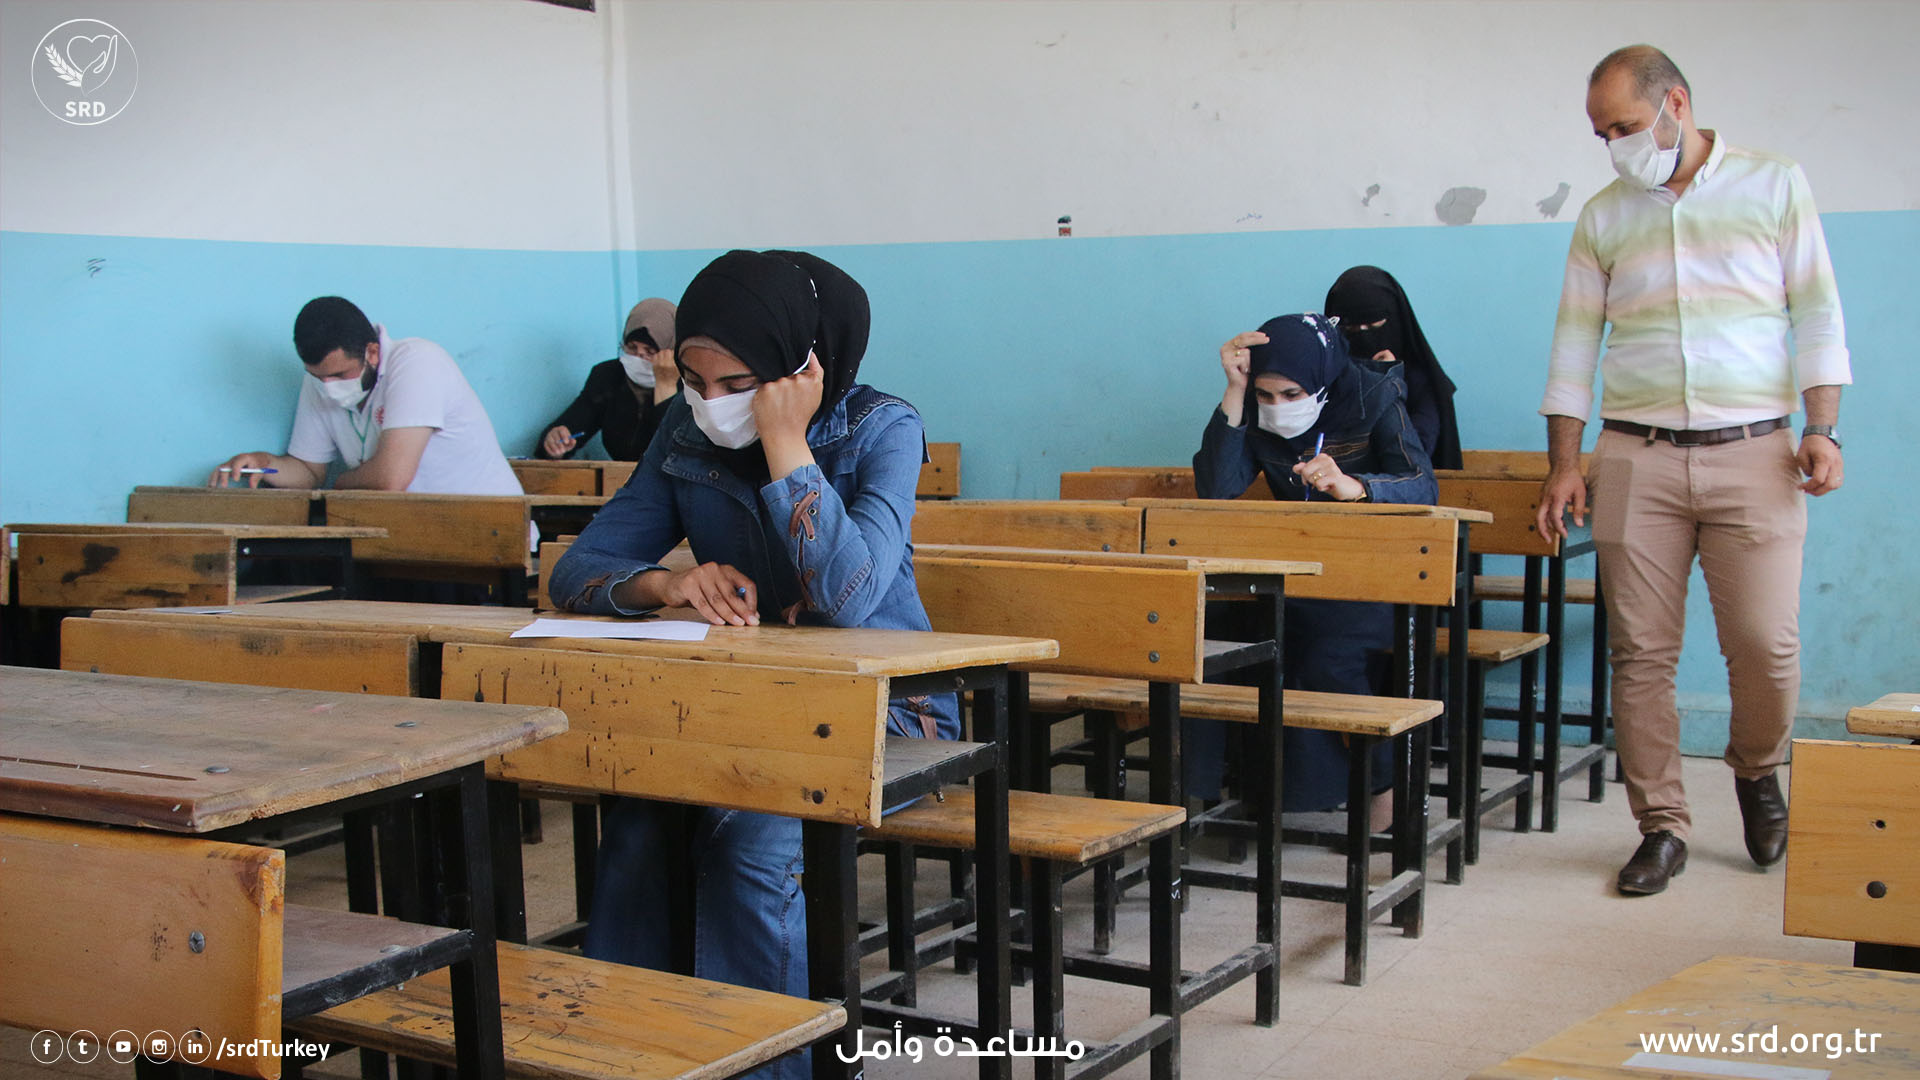 Syria Relief & Development's Afrin School of Nursing & Midwifery